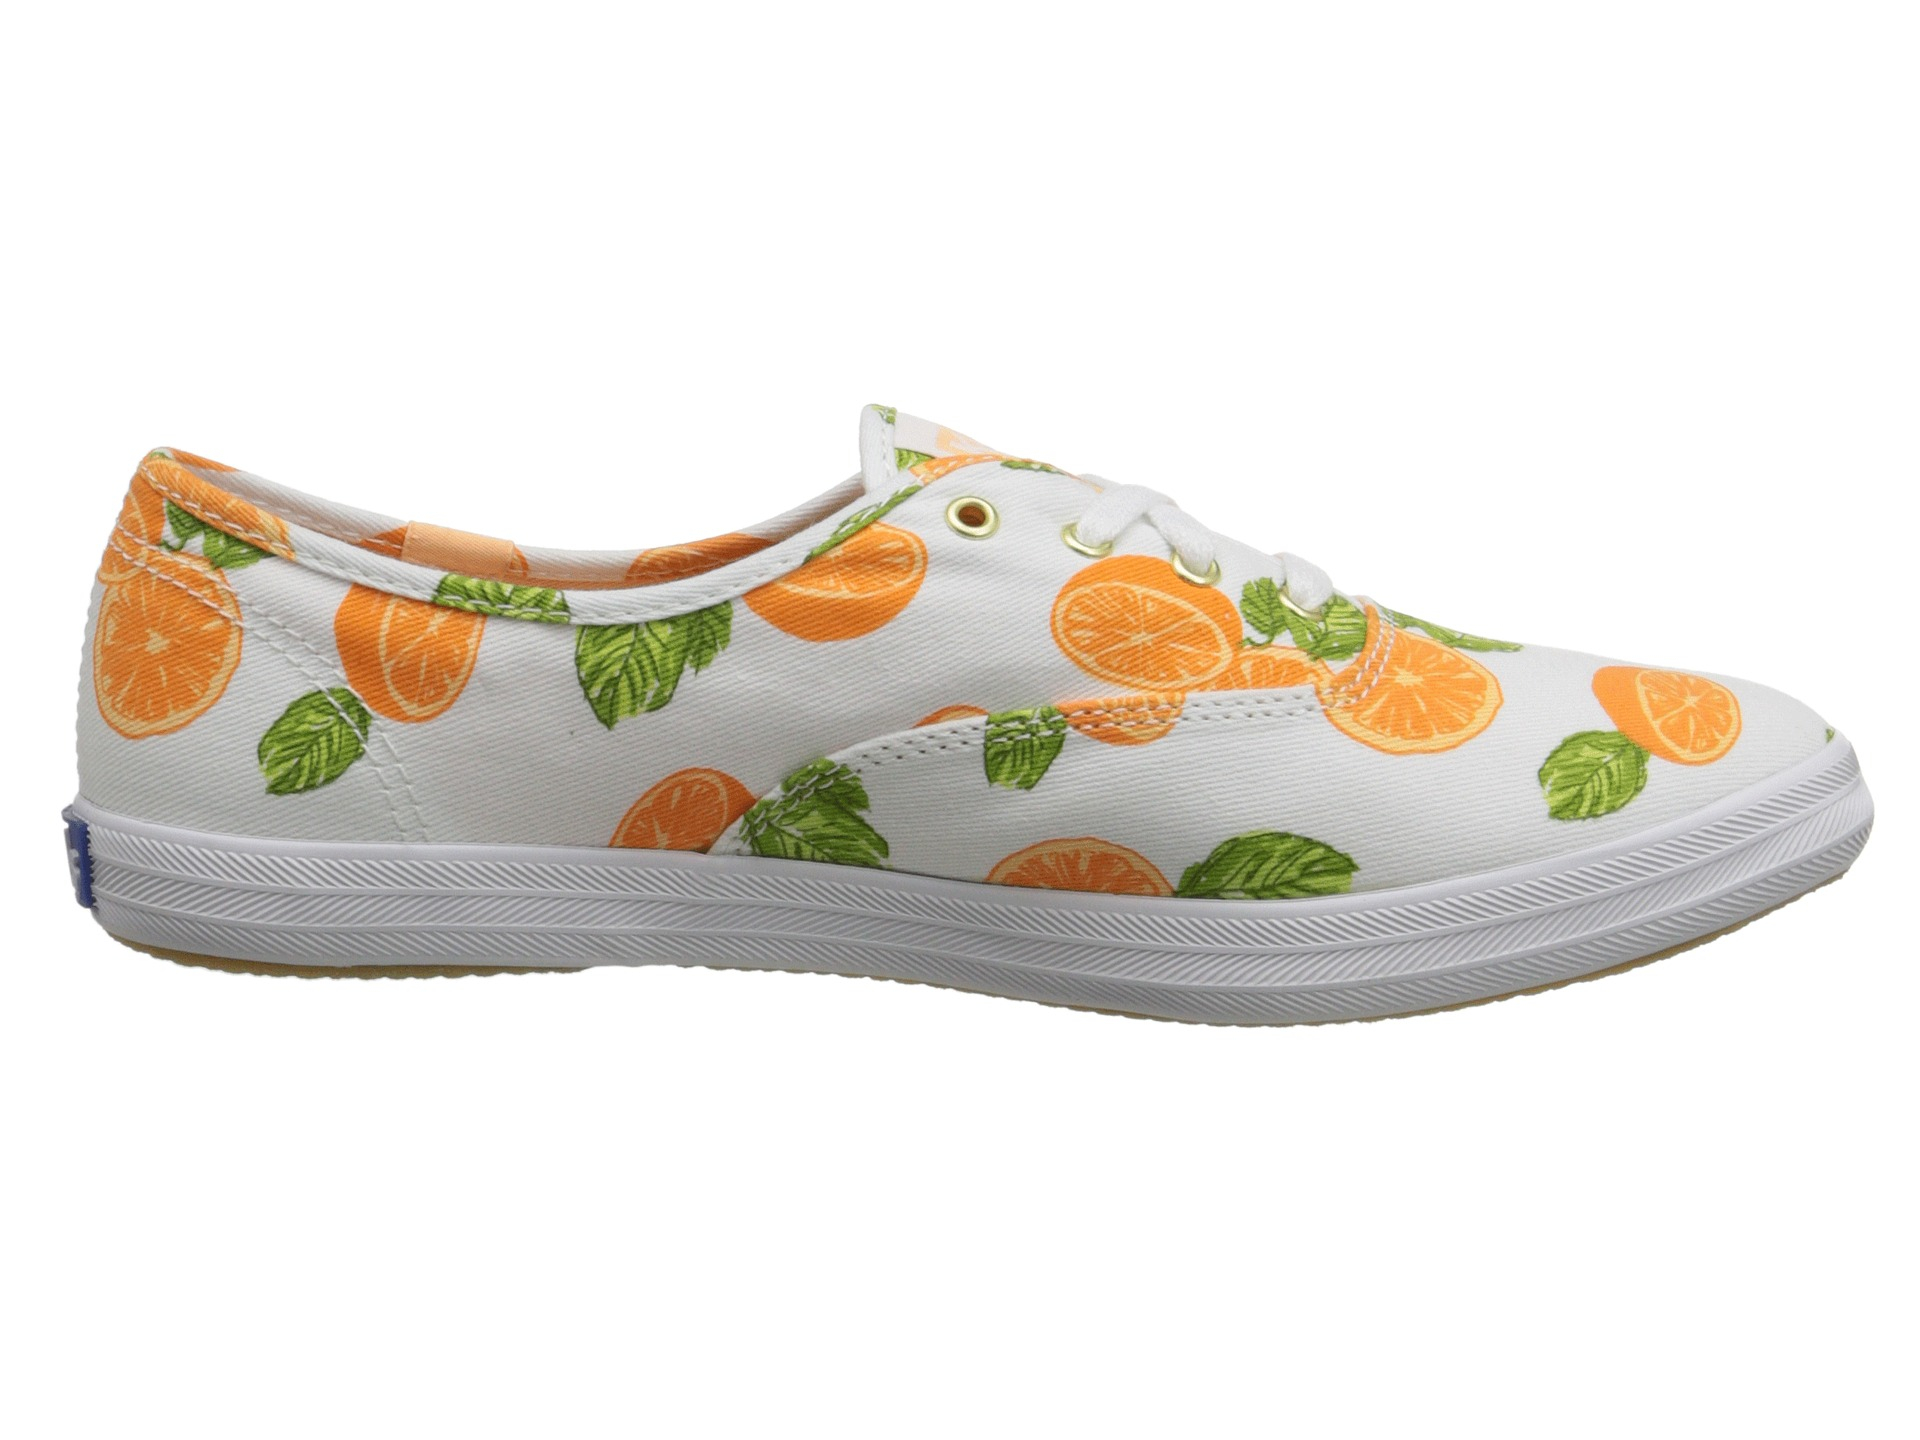 keds champion shoes with fruit